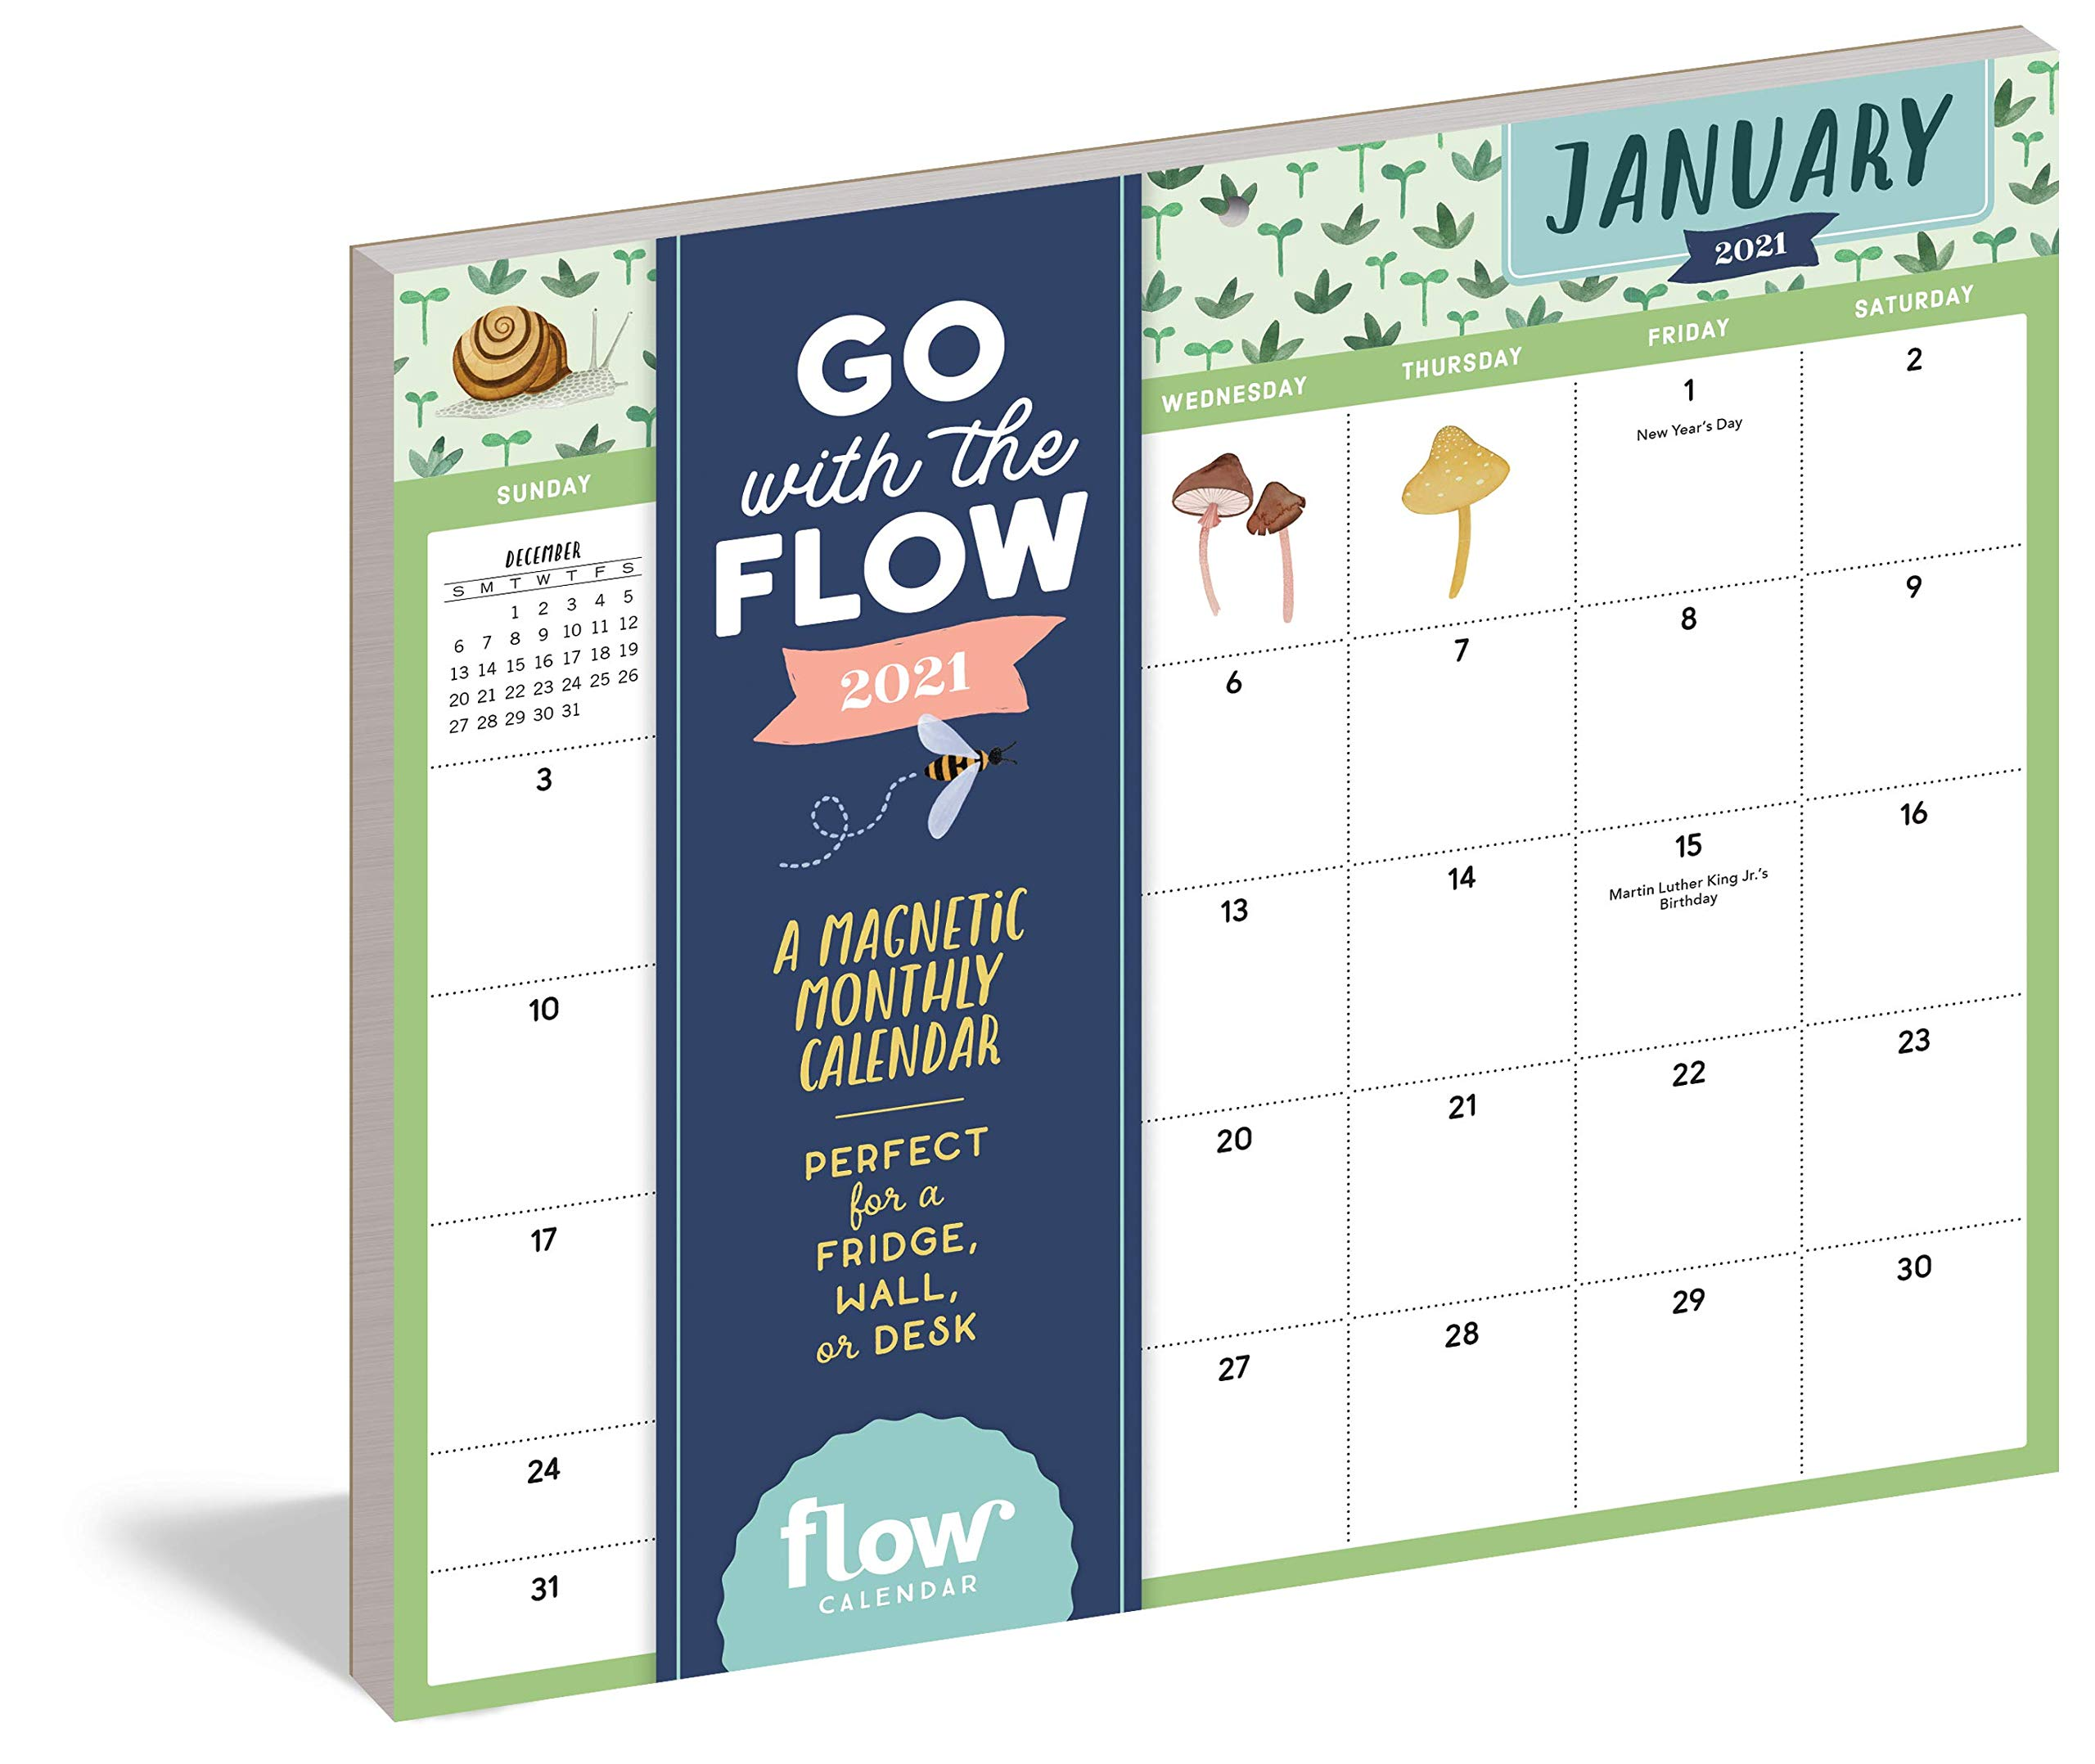 Calendar Magnets 2021 Go with the Flow: A Magnetic Monthly Calendar 2021: Editors of